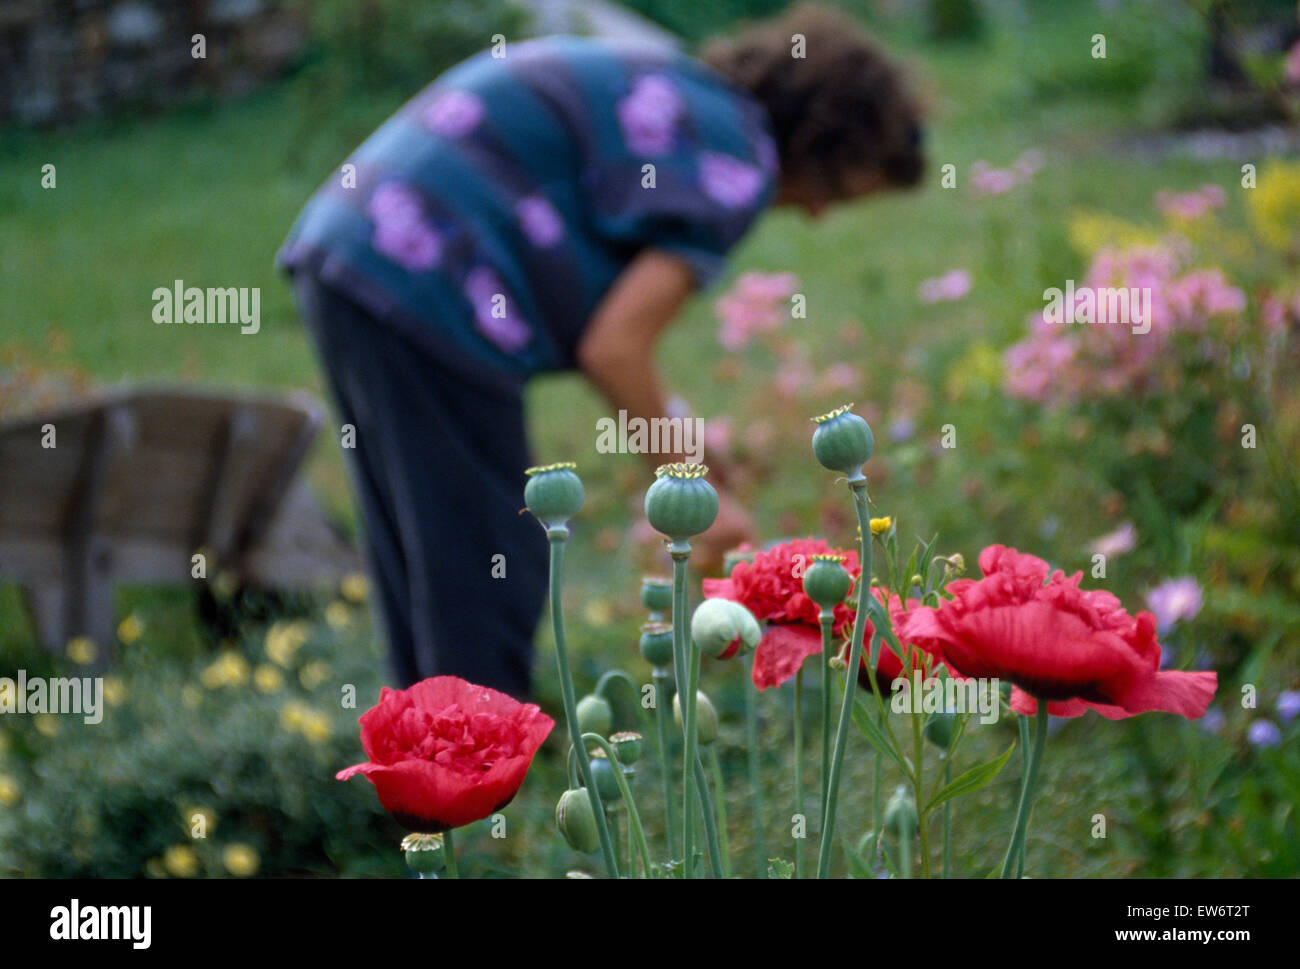 Soft focus view of a woman dead-heading perennials in a country garden - Stock Image